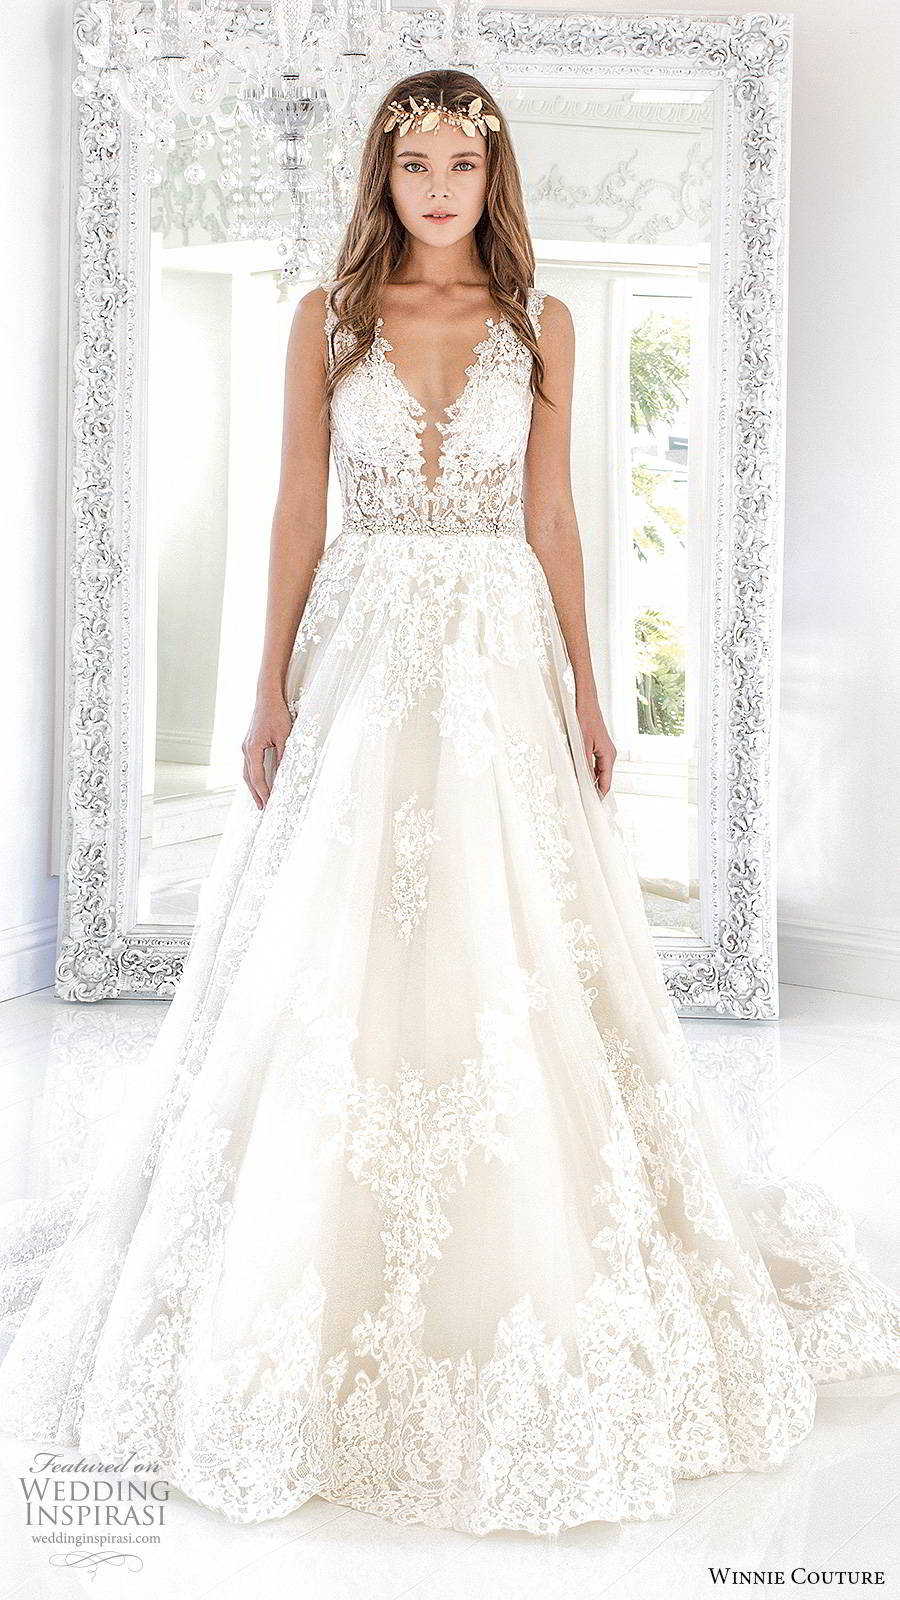 winnie couture 2019 bridal sleeveless thick straps plunging v neckline fully embellished lace romantic a line ball gown wedding dress keyhole back chapel train (5) mv